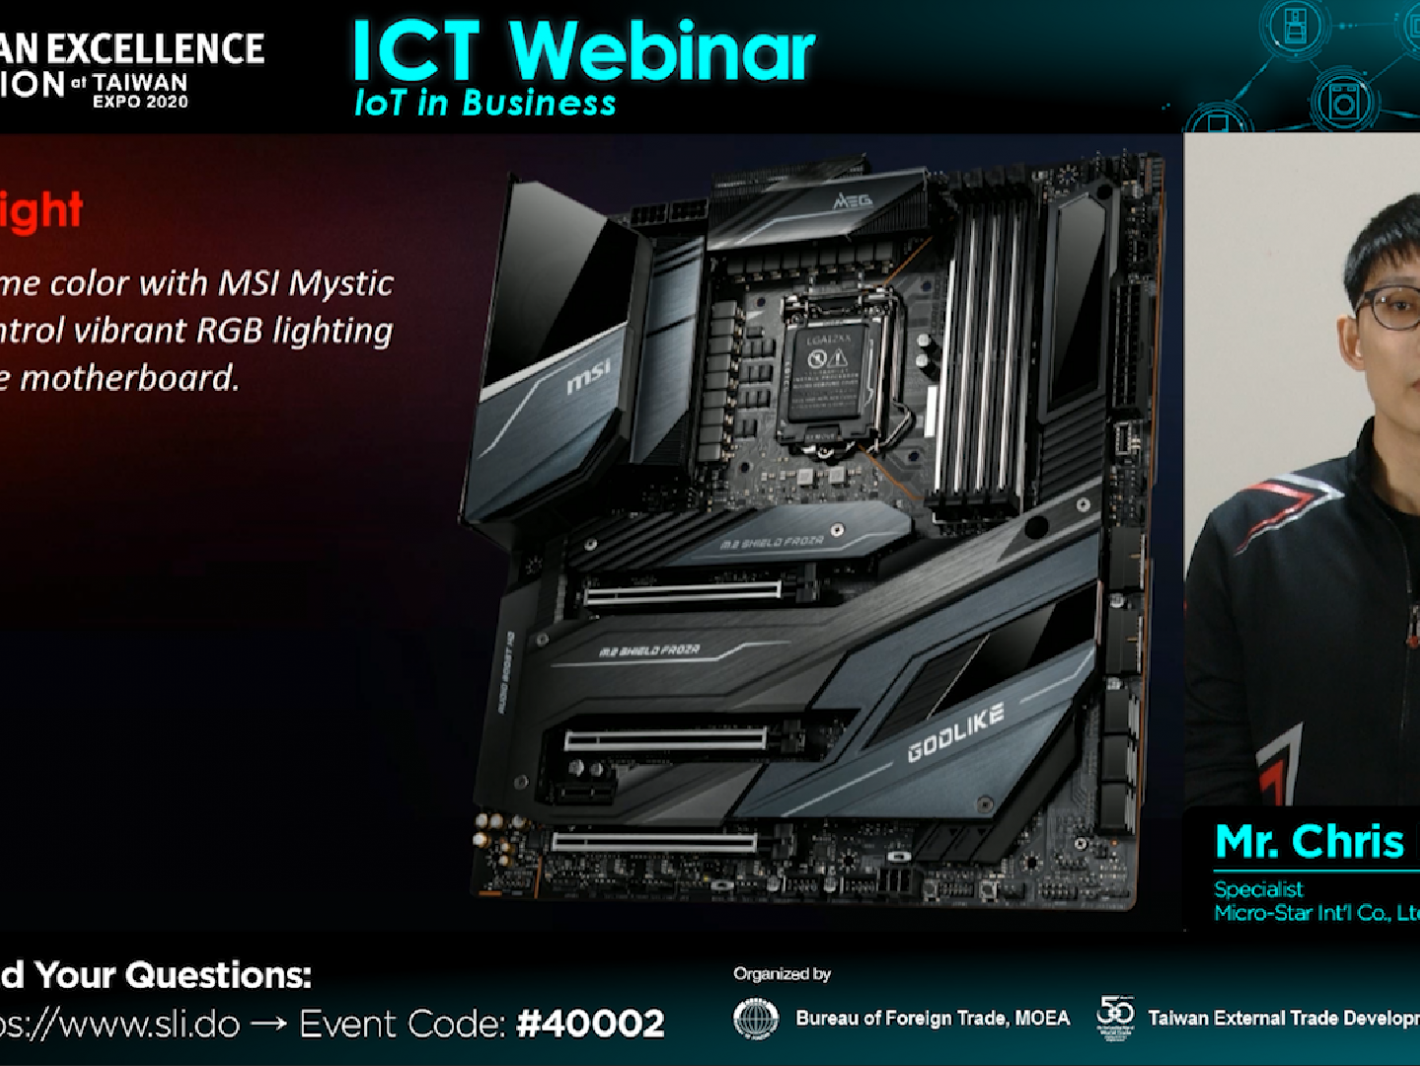 08-Mr. Chris Peng, Specialist, Micro-Star Int'l Co., Ltd. introduced  MSI's comprehensive laptops and gaming products.